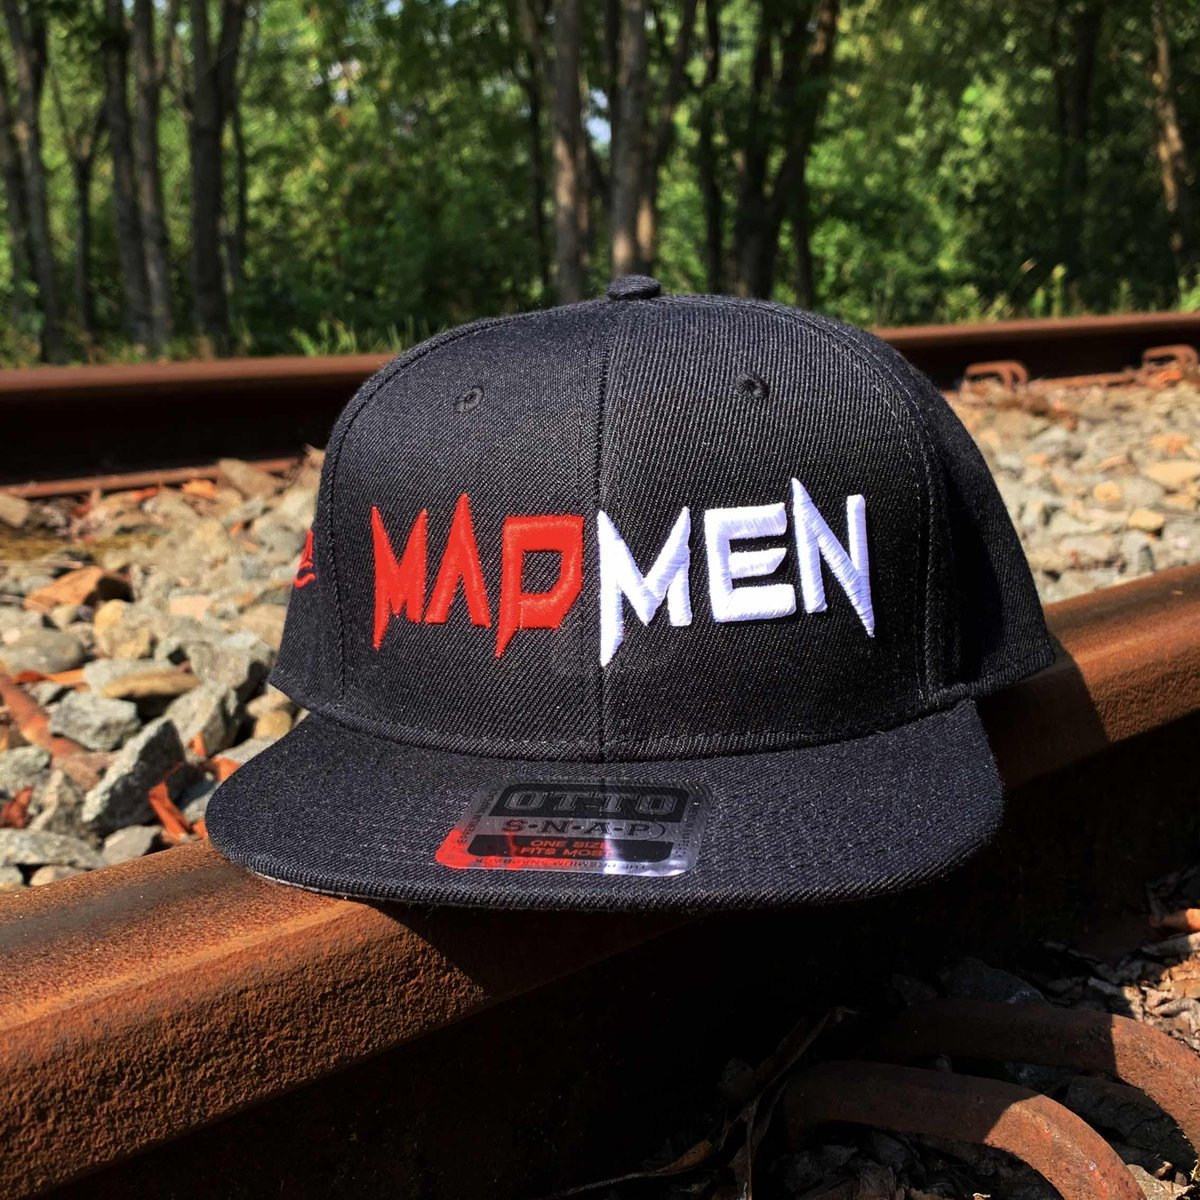 Almost weekend 🙌🏻 celebrate it with this MAD #hat 🔥 https://t.co/P2d79eVqg2  #customhat #streetwearaddict #y#hatgame #teamfitted #capaddict #streetapparel #dailystreetwear #hatclubexclusive #flatbrim #customembroidery #dtgprinting #capcollector #snapbackhat #fashiongram https://t.co/TjcQjjY1Ts